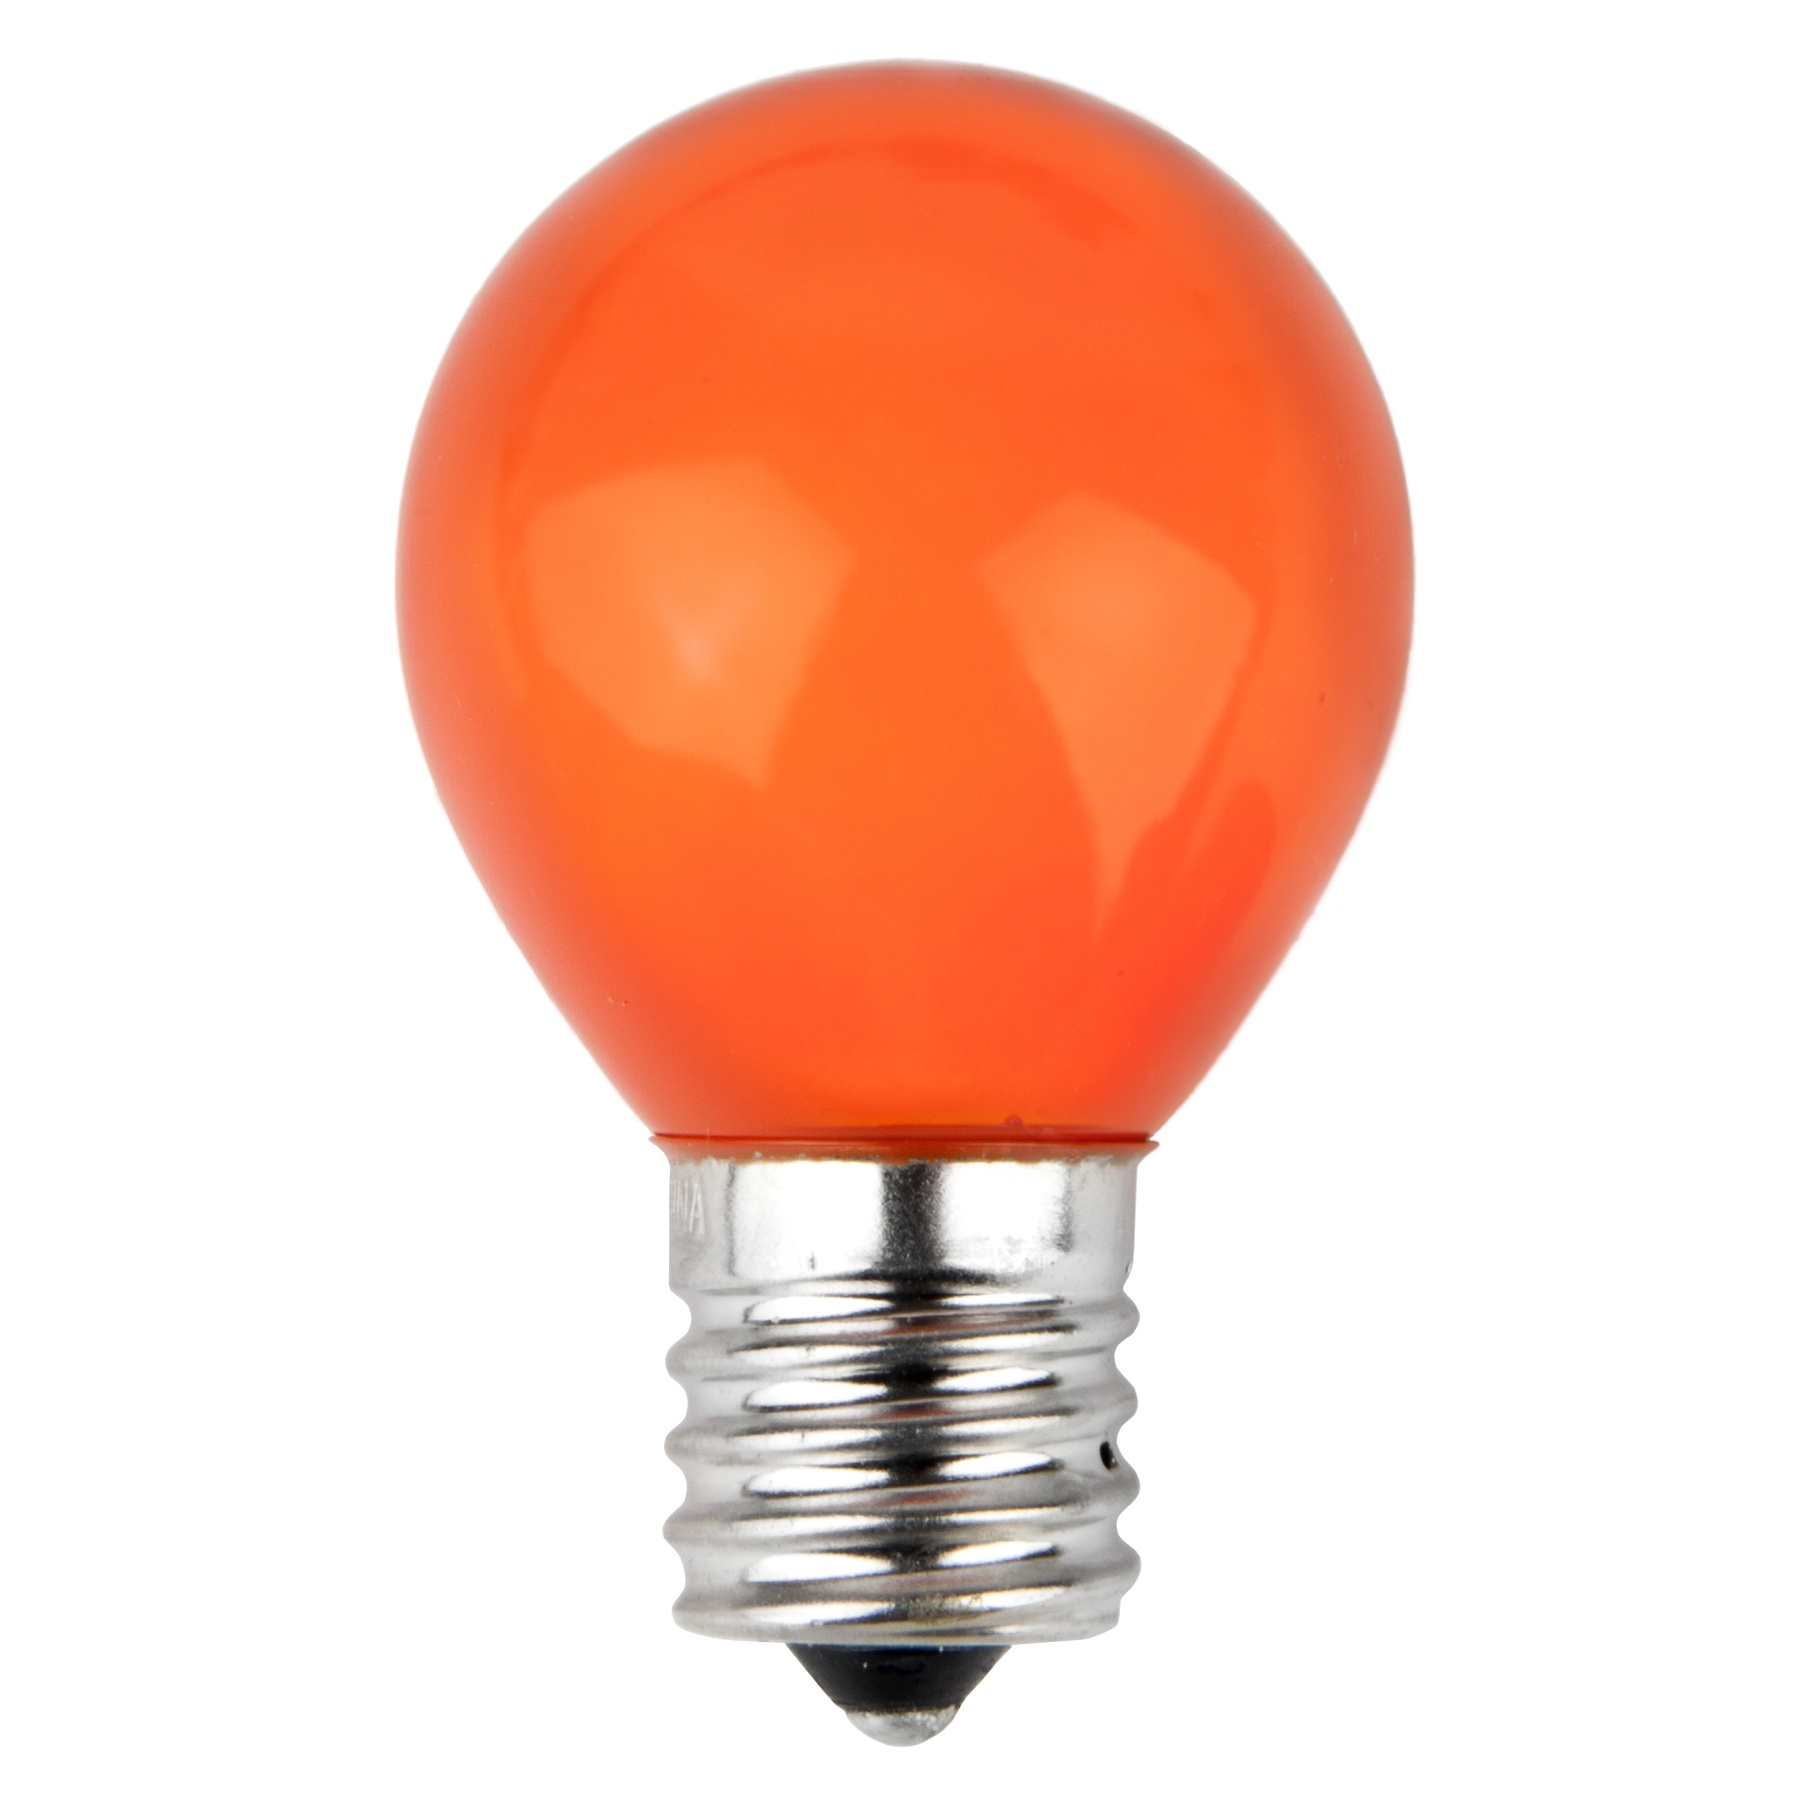 E17 Patio and Party Light Bulbs - S11 Opaque Orange, 10 Watt Replacement Bulbs